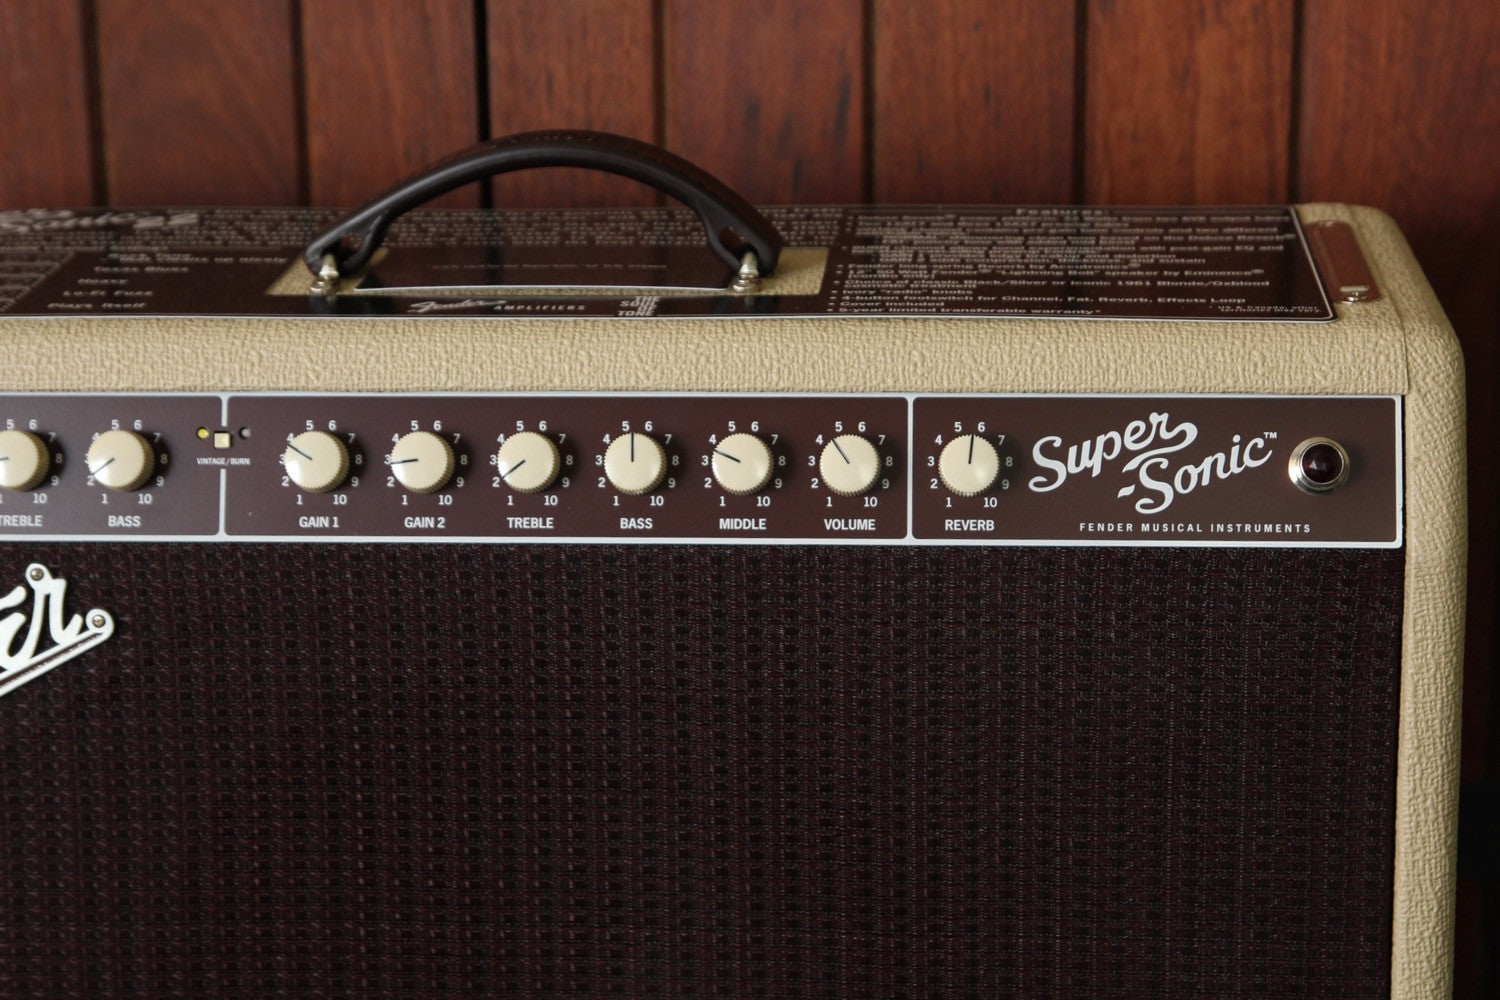 Fender Super-Sonic 22 22W 1x12 Valve Guitar Combo Amplifier - The Rock Inn